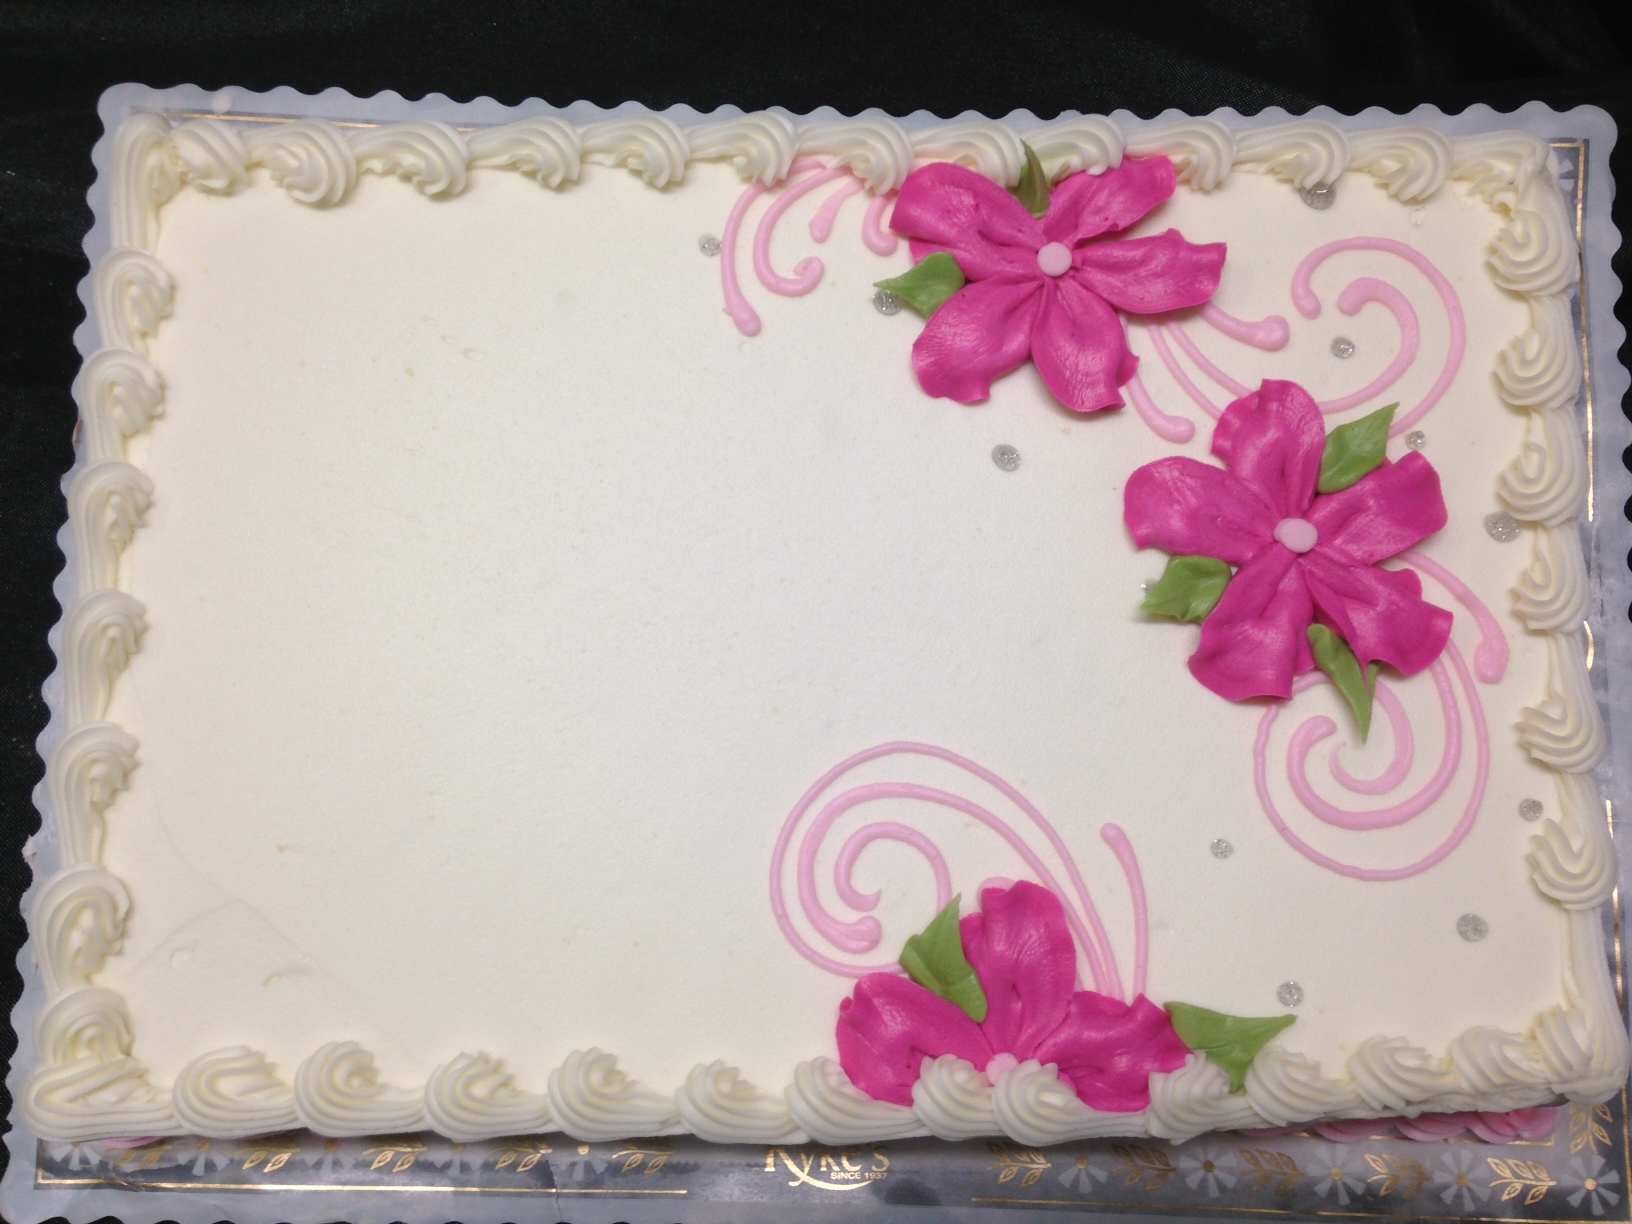 Budget Friendly Cake Designs Rykes Bakery Catering Cafe